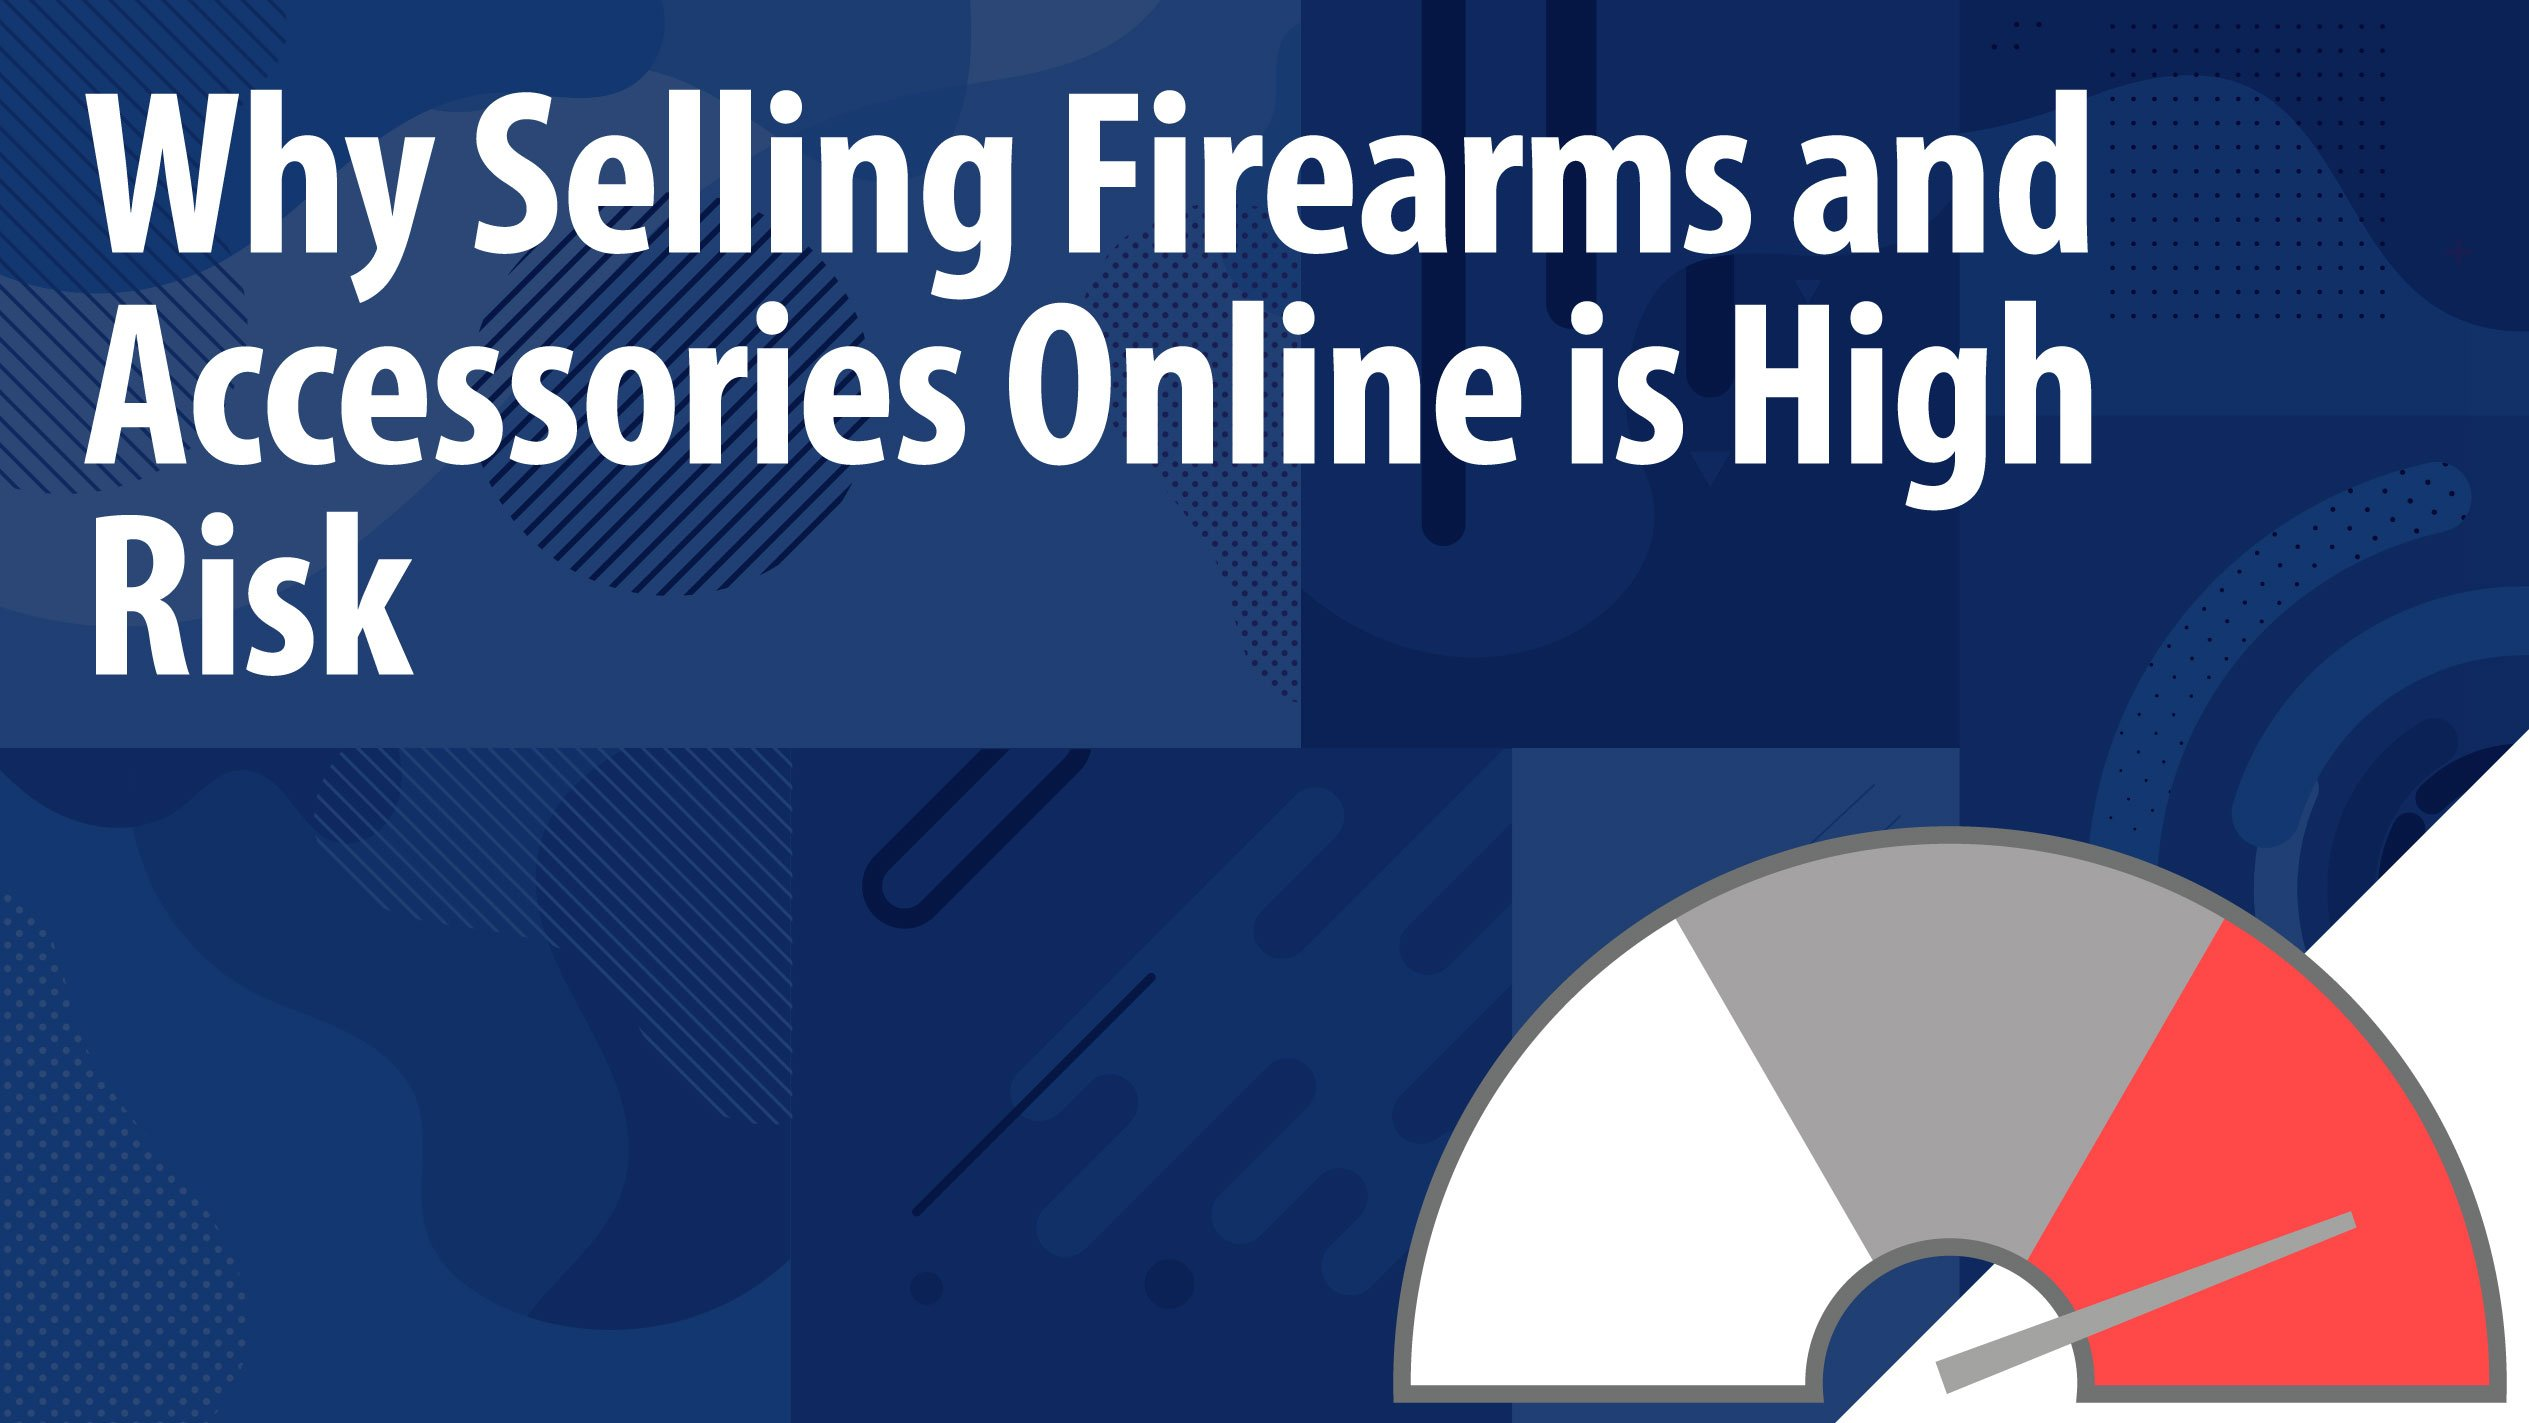 Why Selling Firearms and Accessories Online is High Risk